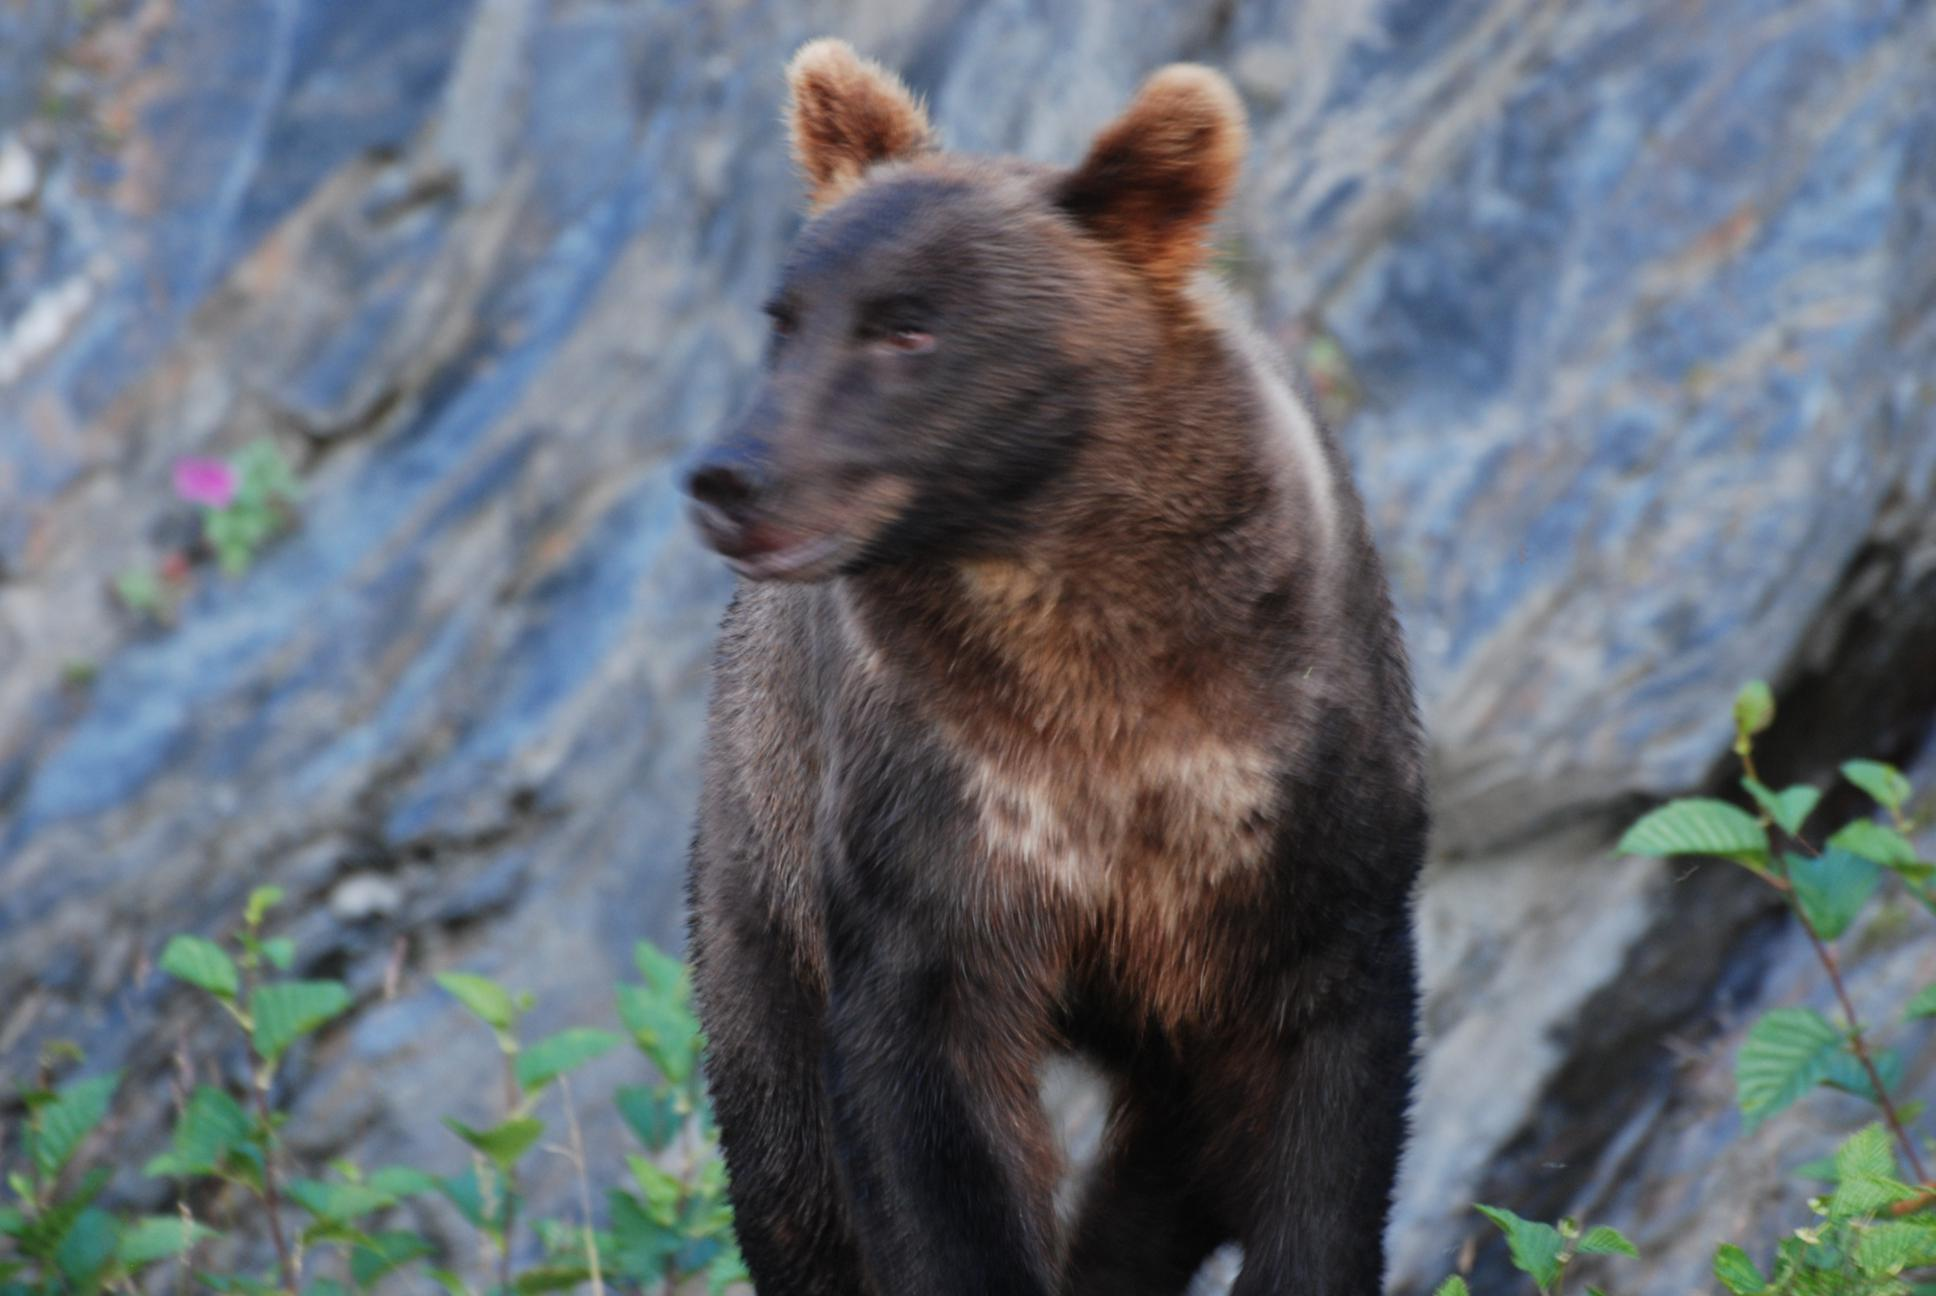 Grizzly-Bear-4-Valdez-AK-2011-07-28_1936x1296.jpg